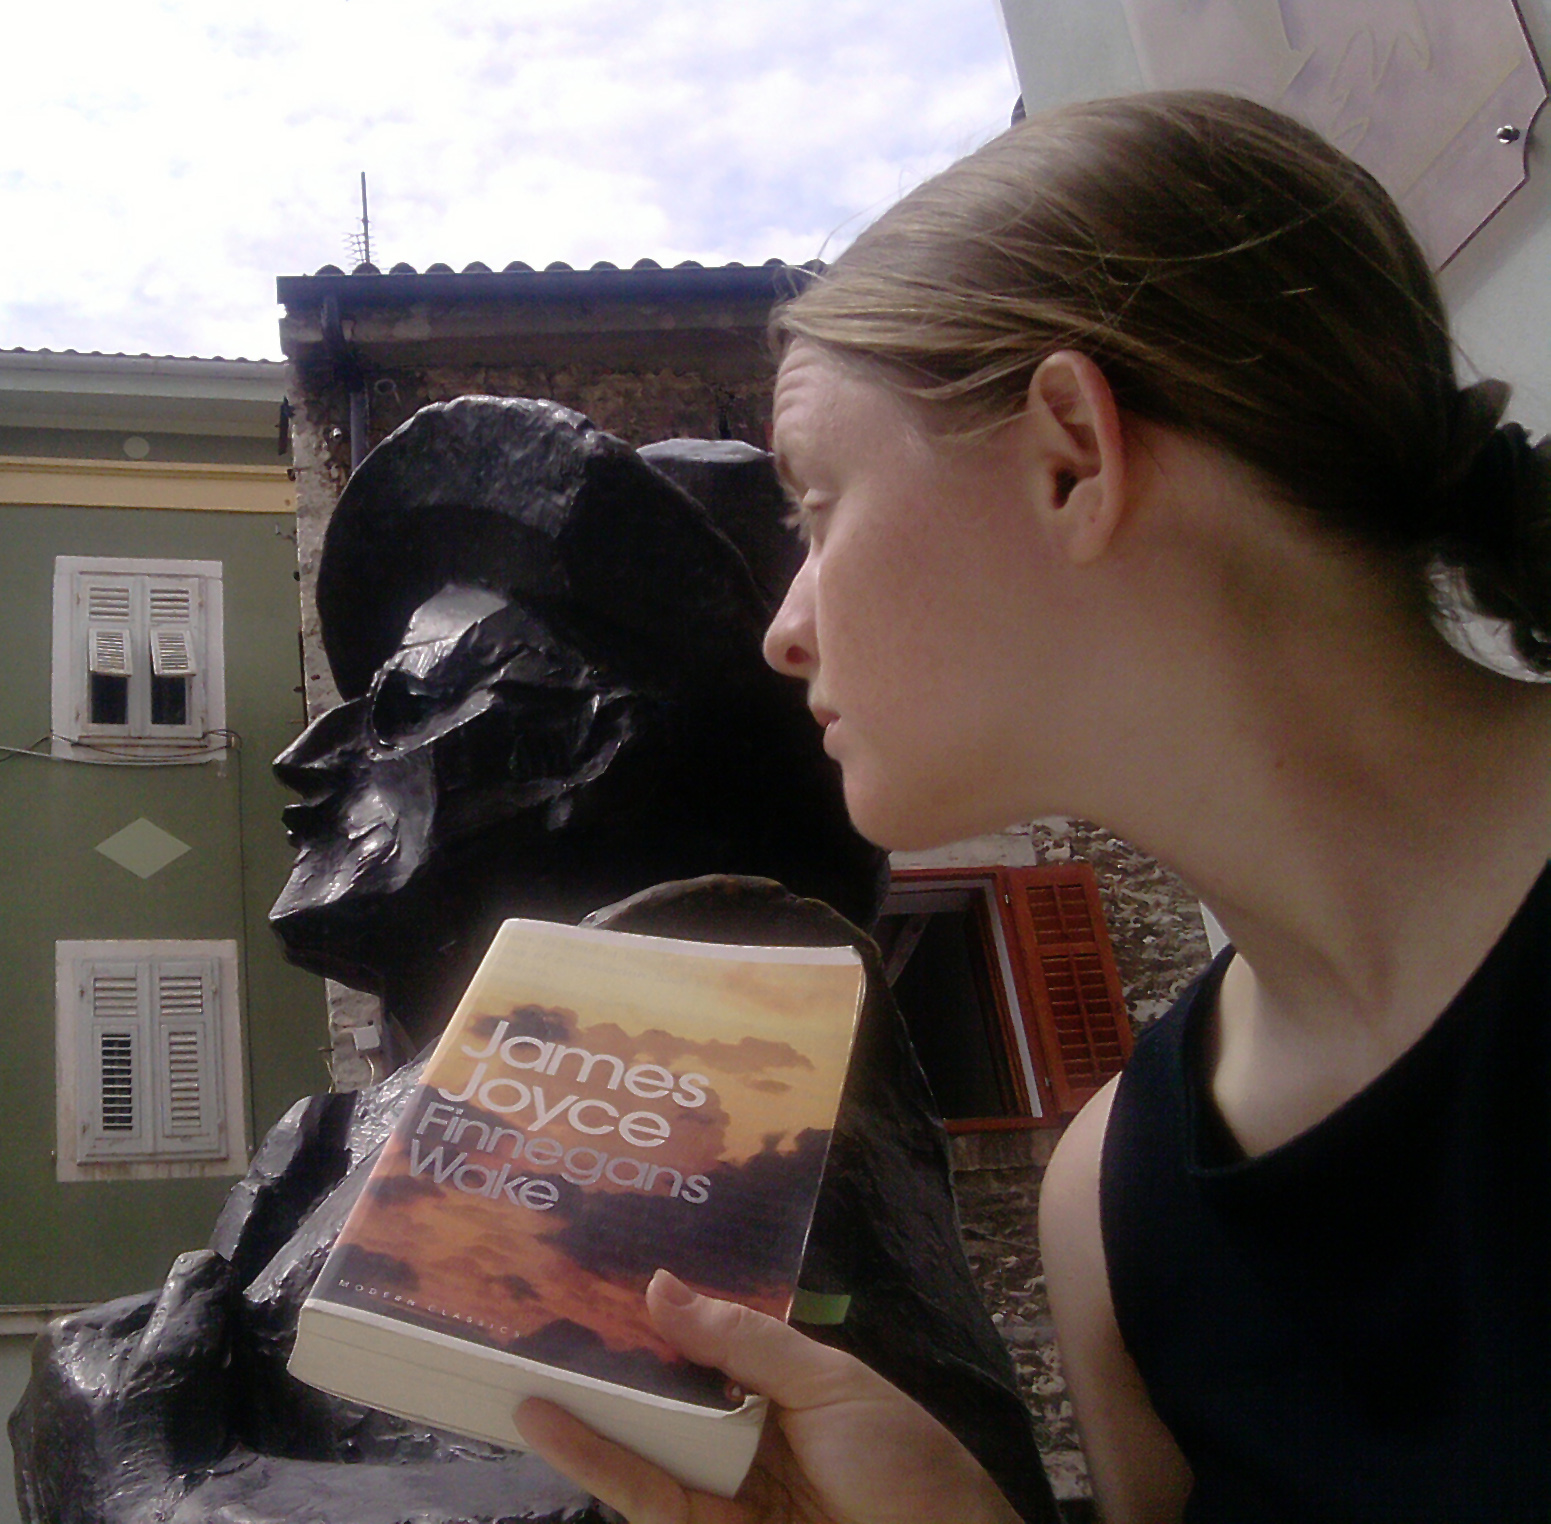 Elizabeth Kate Switaj asks the statue of James Joyce in Pula, Croatia for an explanation of Finnegans Wake. Joyce does not cooperate.